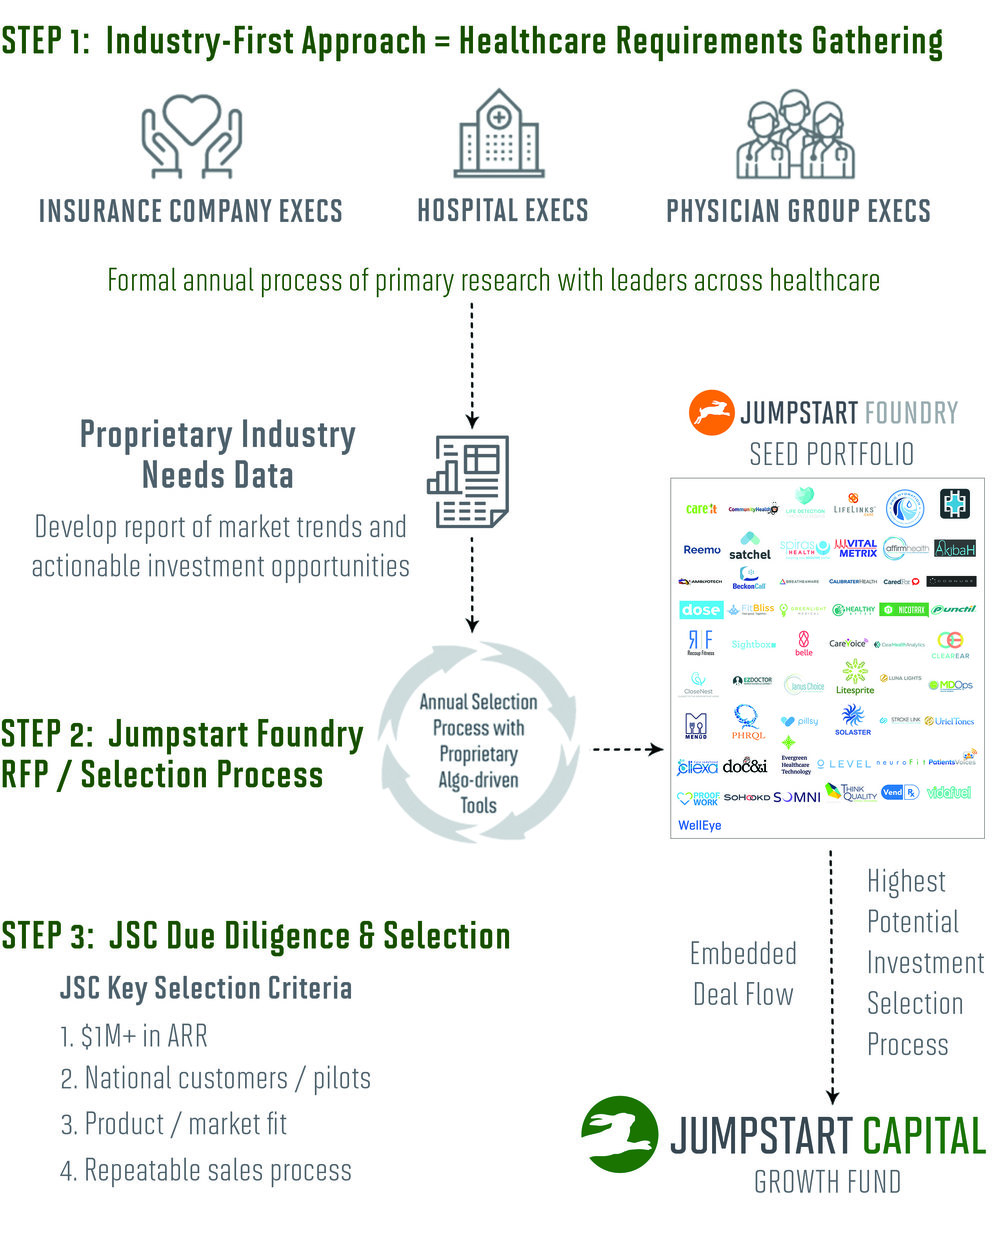 jsc new new infographic.jpg